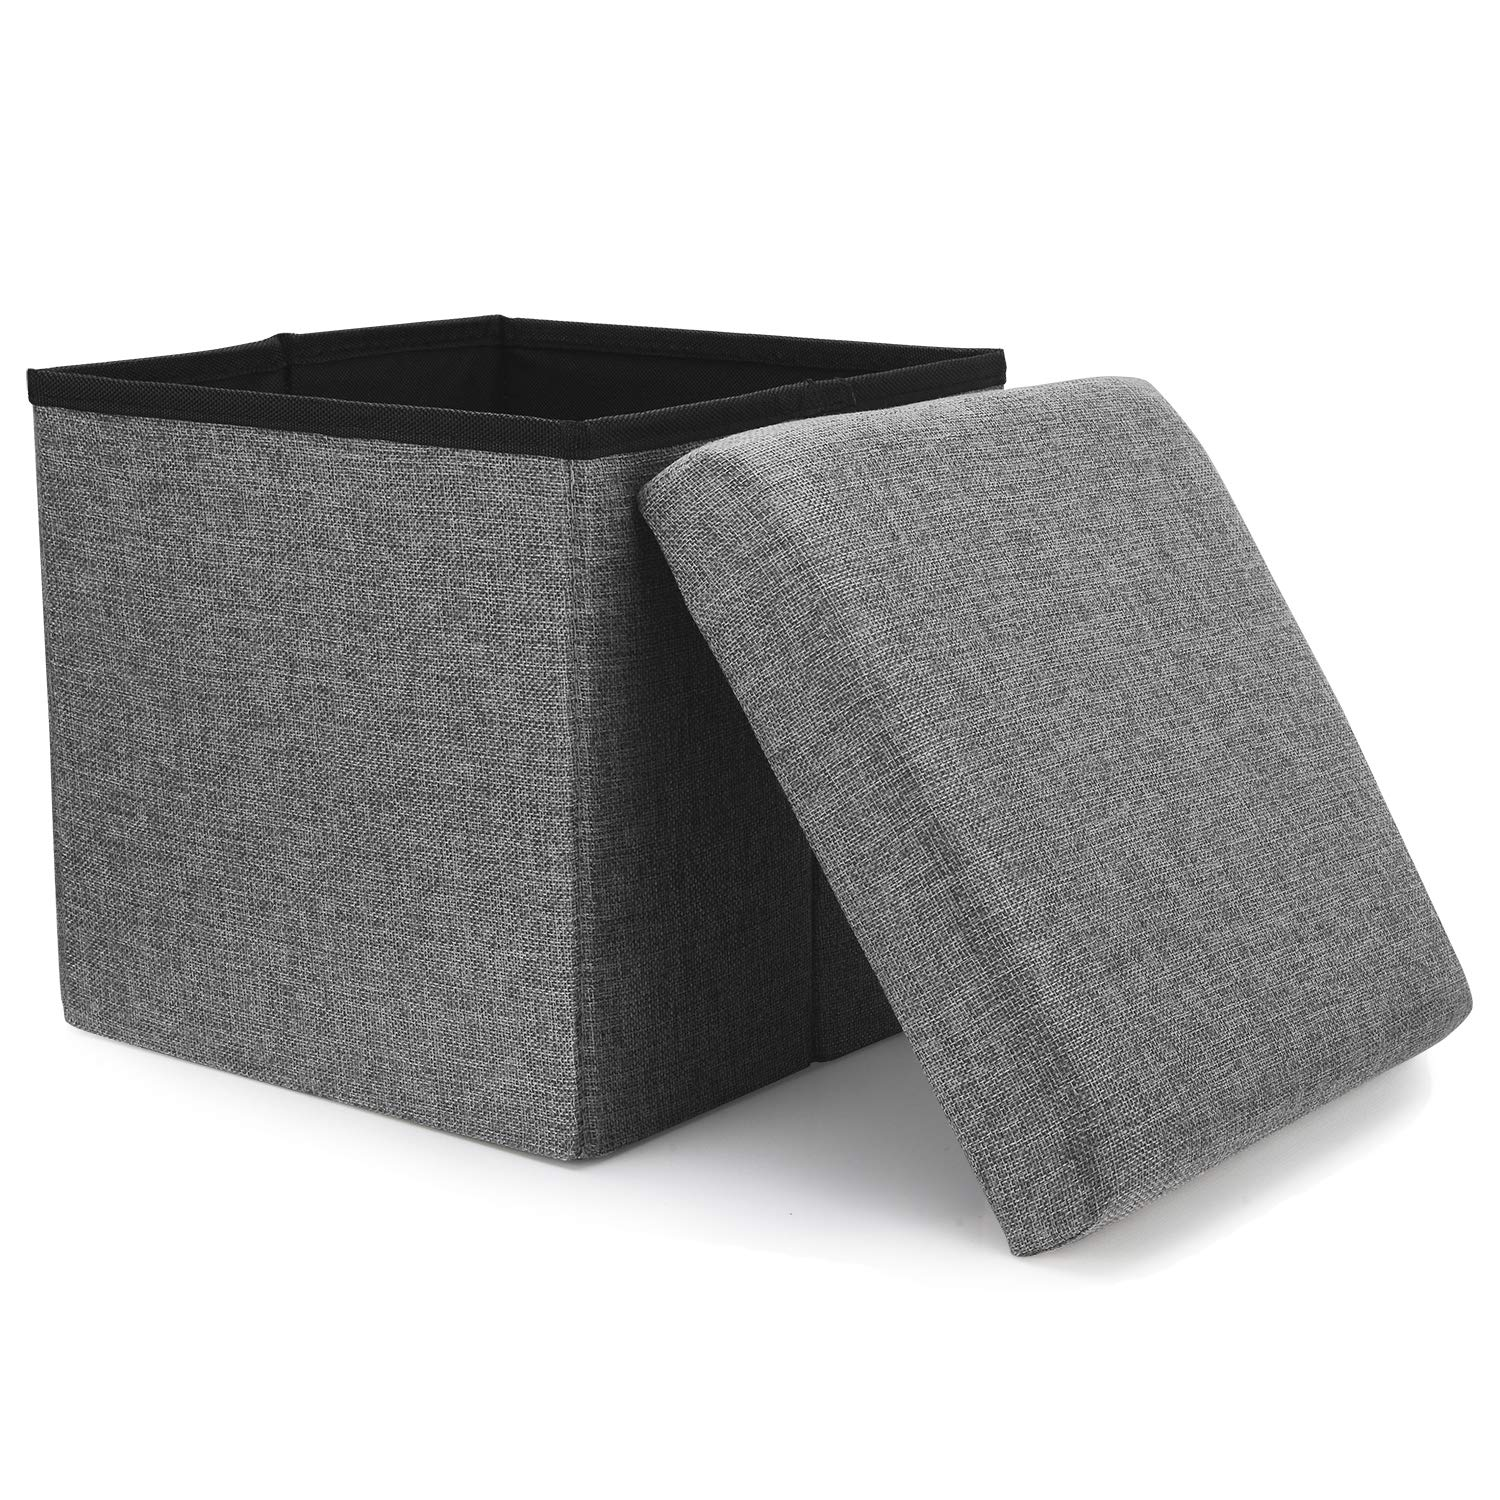 WoneNice Folding Storage Ottoman, Versatile Space-Saving Storage Toy Box with Memory Foam Seat, Max Load 100 kg Linen Gray 12 x 12 x 12 Inch